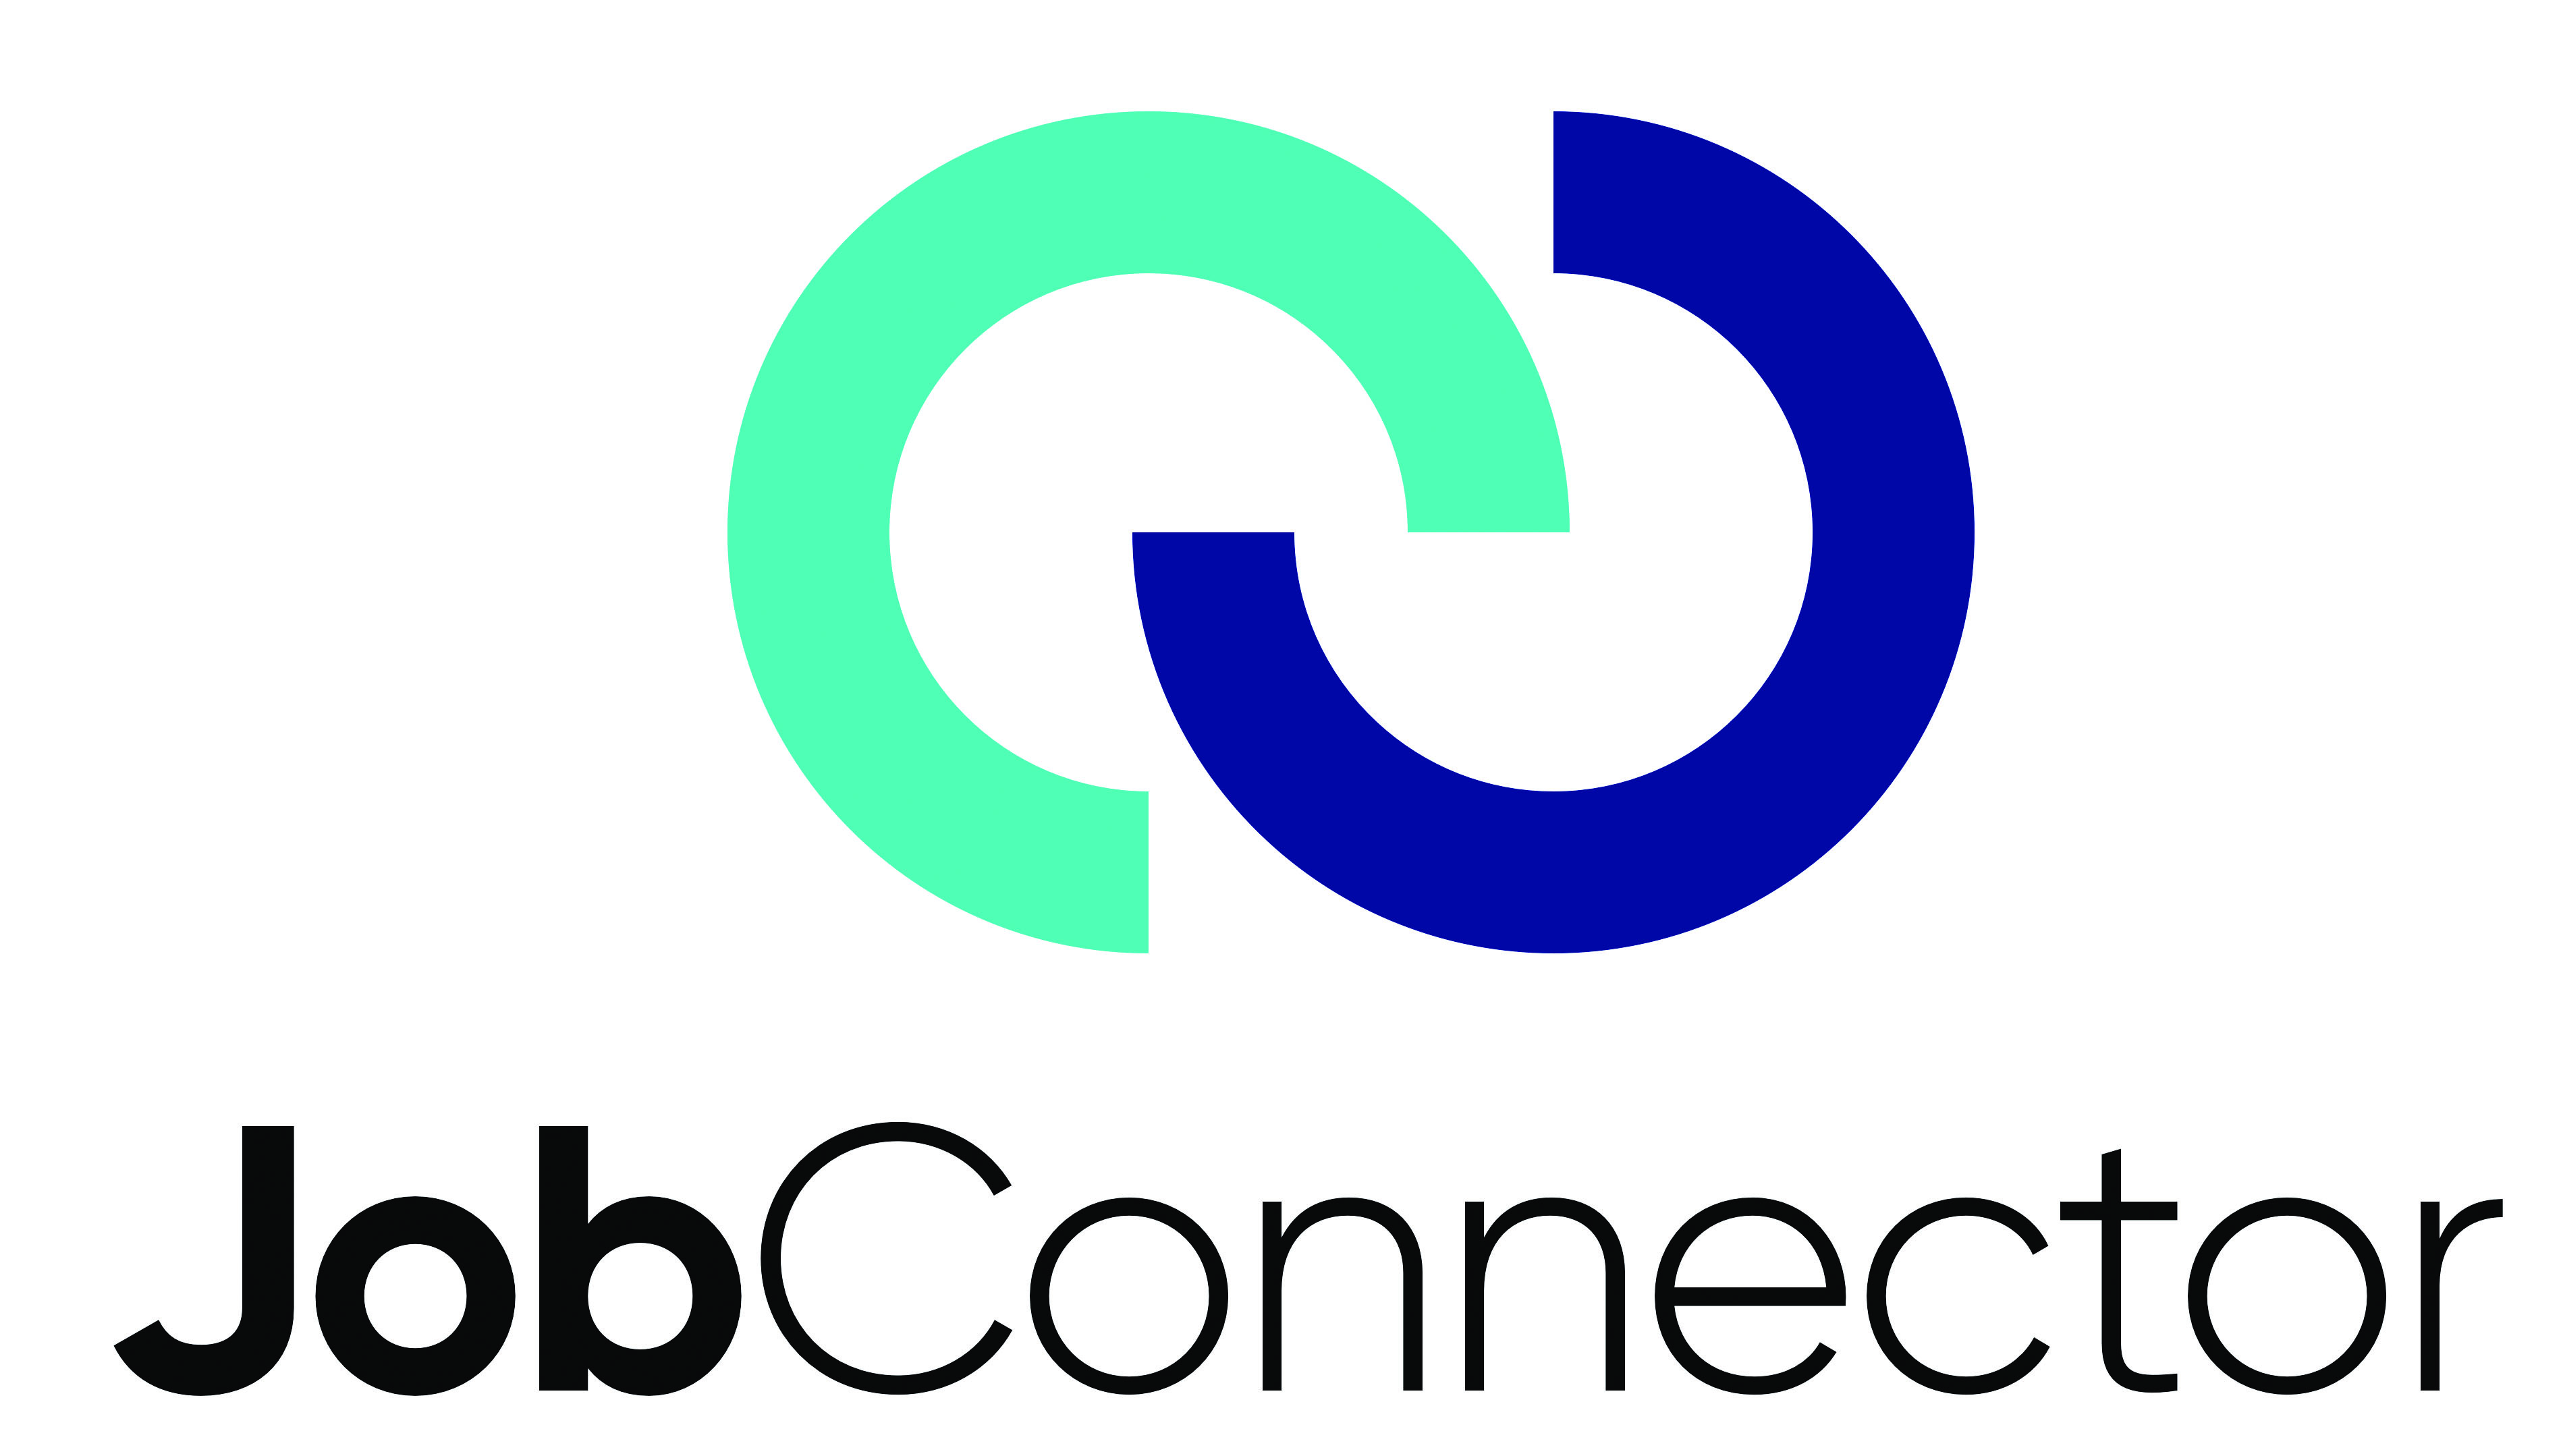 Job Connector